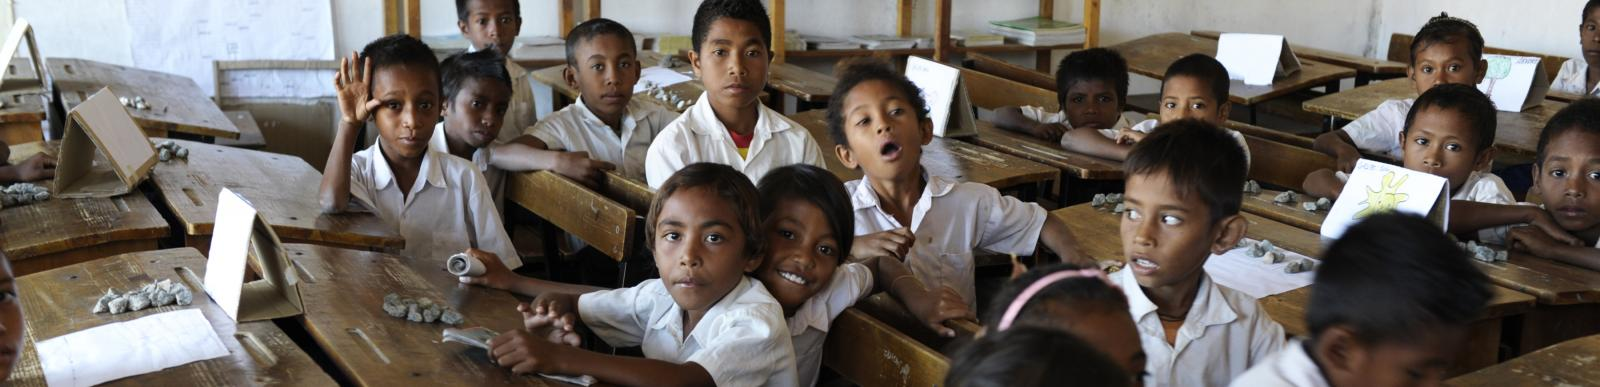 Primary School in Dili, Timor-Leste